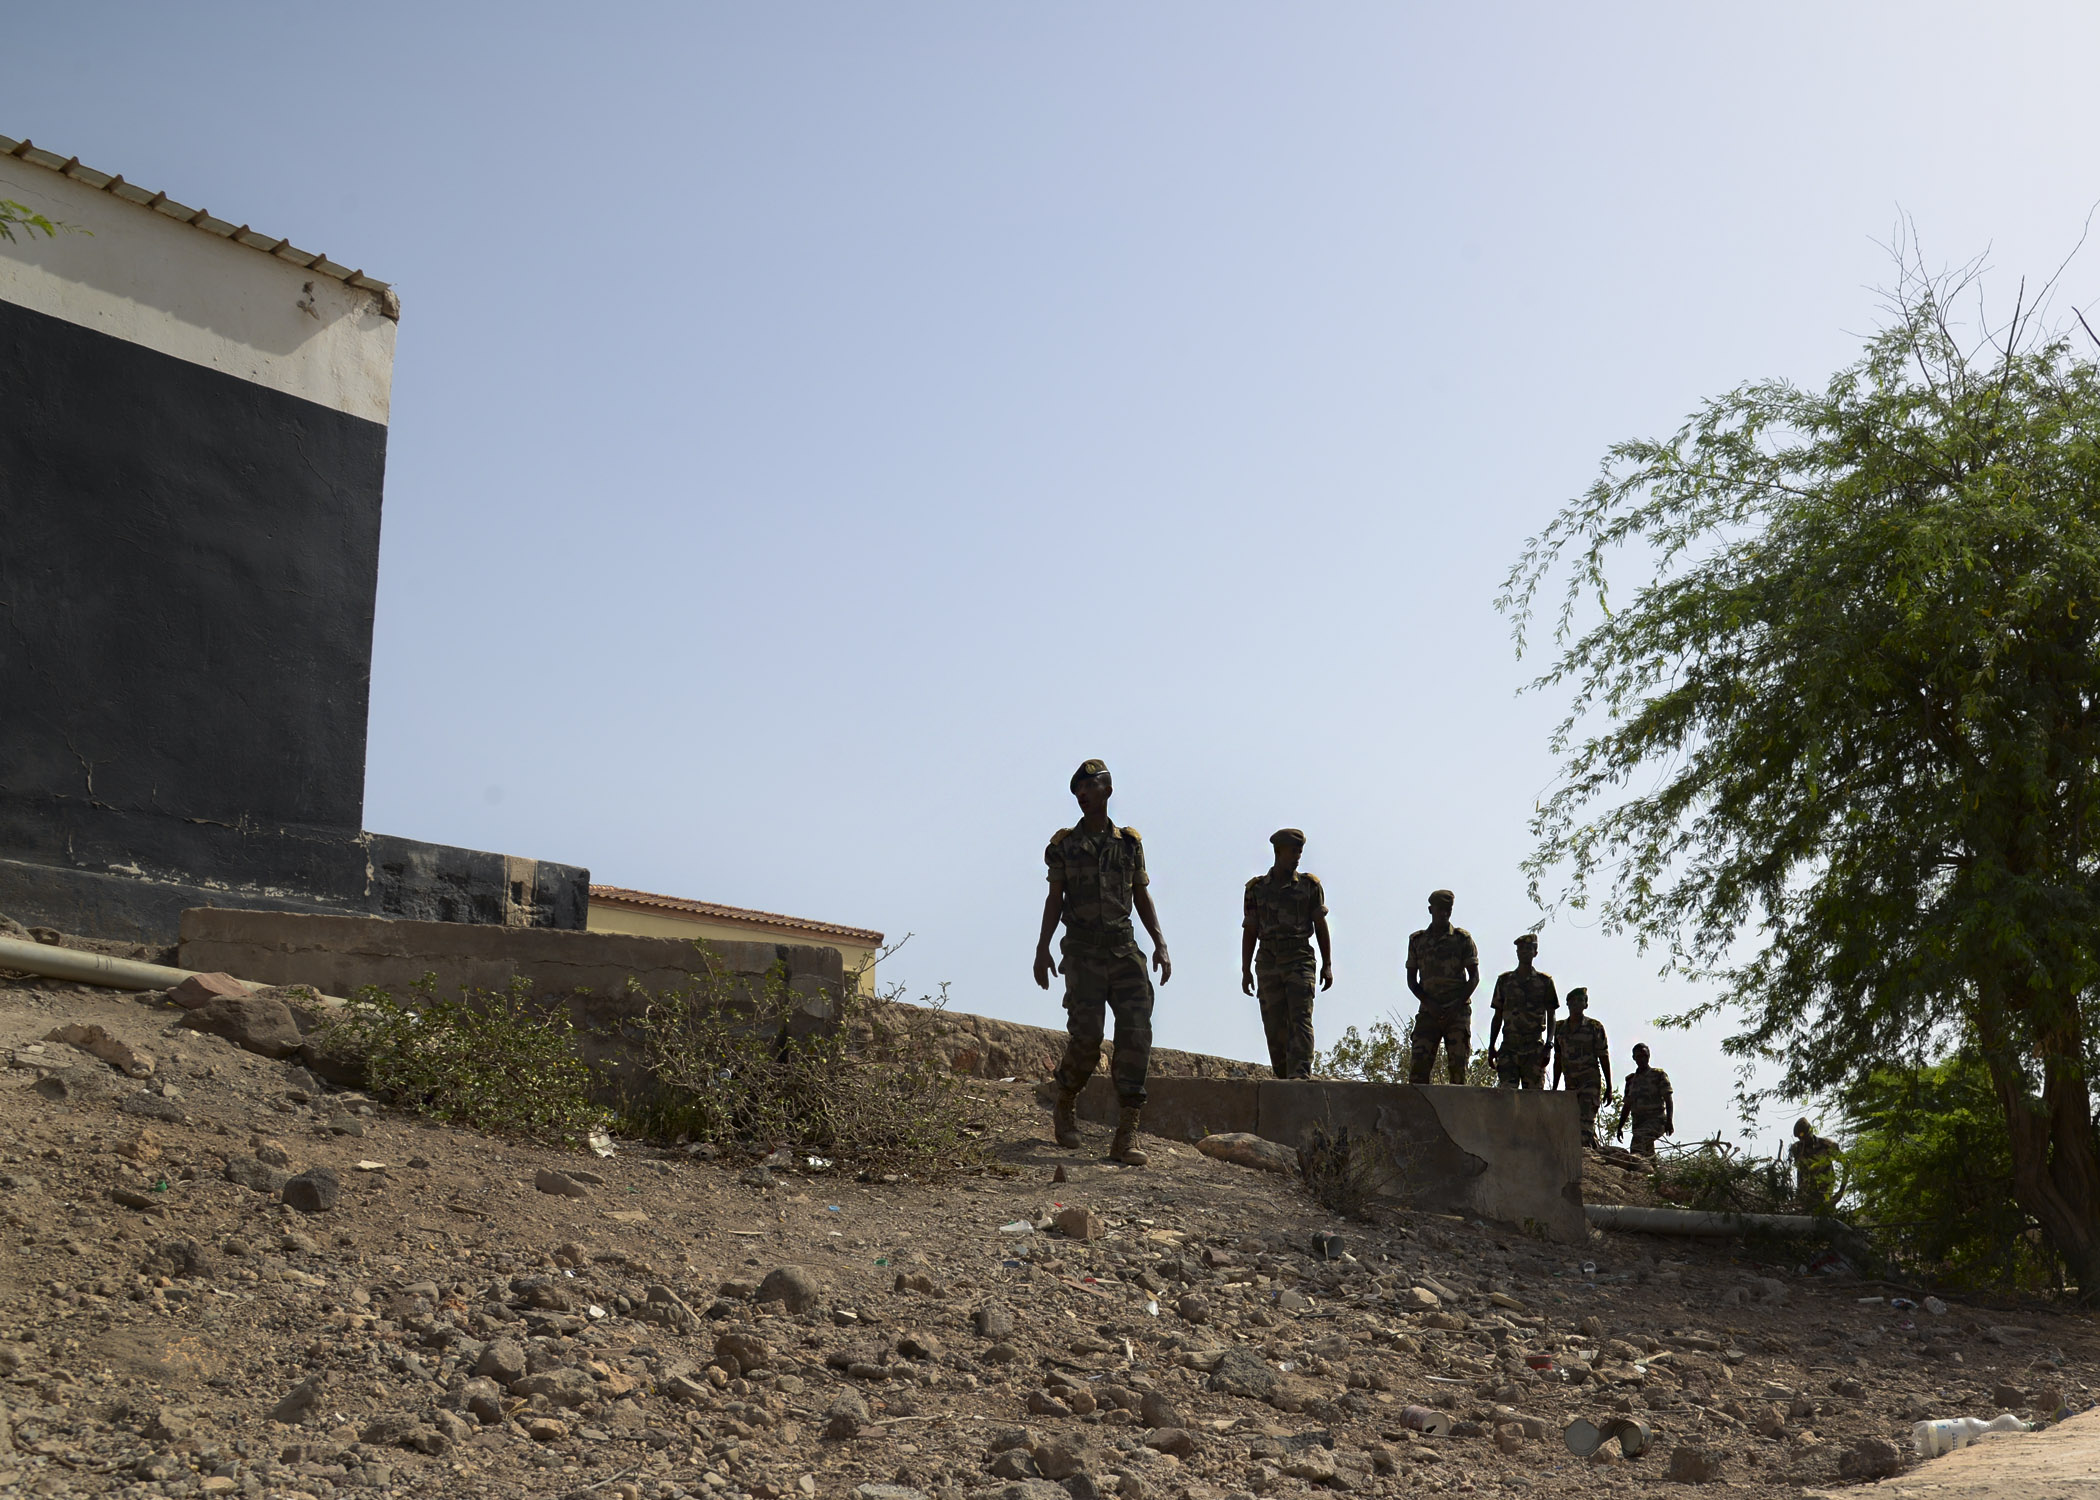 A team of Djiboutian Army cadets patrol for roadside bombs during an improvised explosive device response training at Arta, Djibouti, May 18, 2016. The U.S. Navy-led course taught the cadets the fundamentals of patrolling and looking for signs of possible IEDs and what to do in case of a detonation or emergency. (U.S. Air Force photo by Senior Airman Benjamin Raughton/Released)